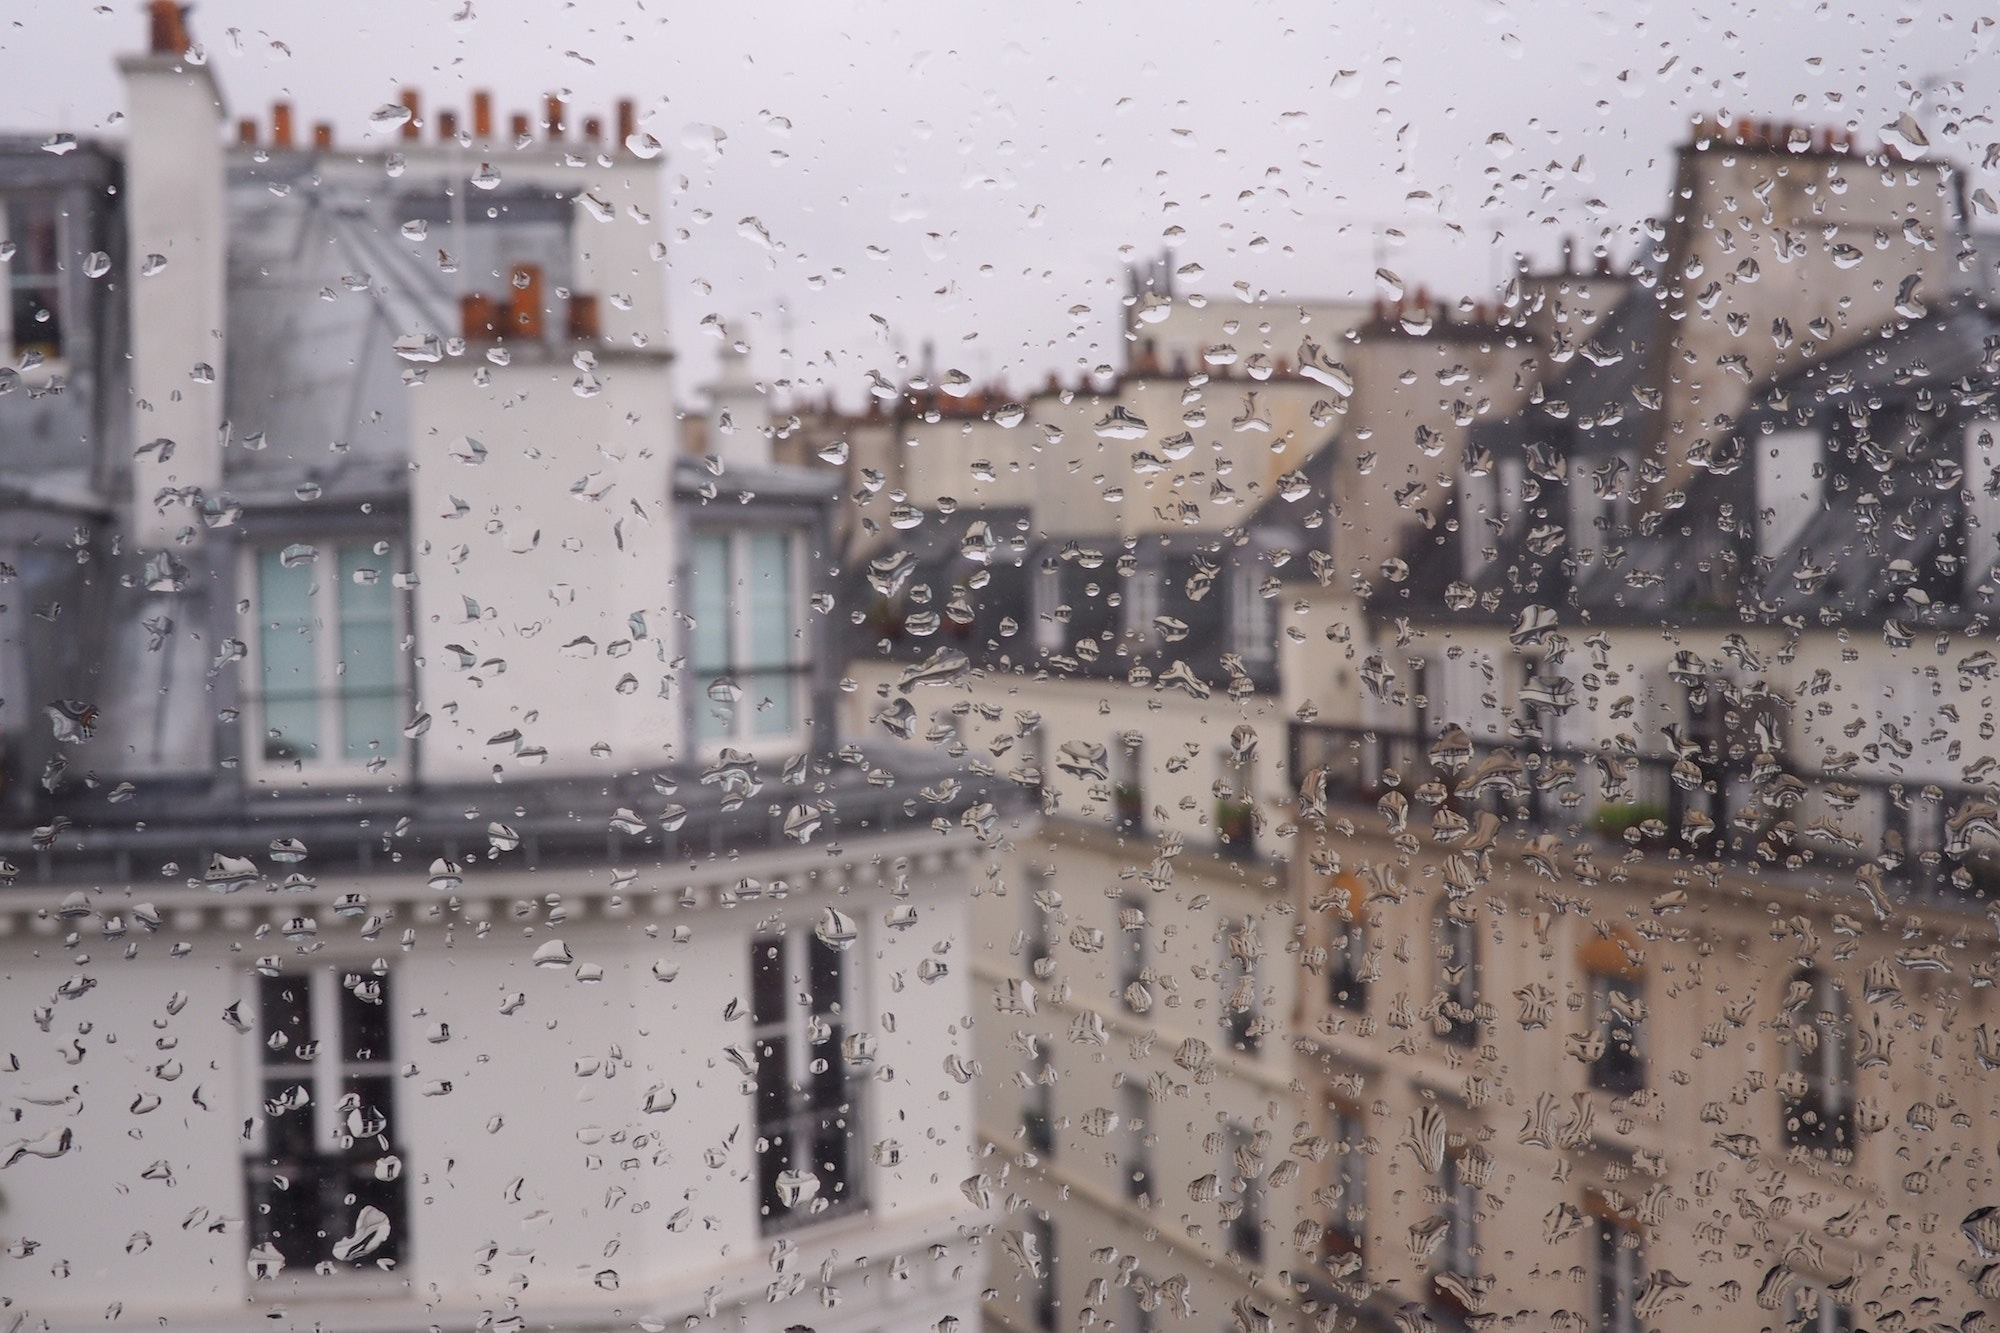 The view of Paris rooftops out of a rain-speckled window in April.